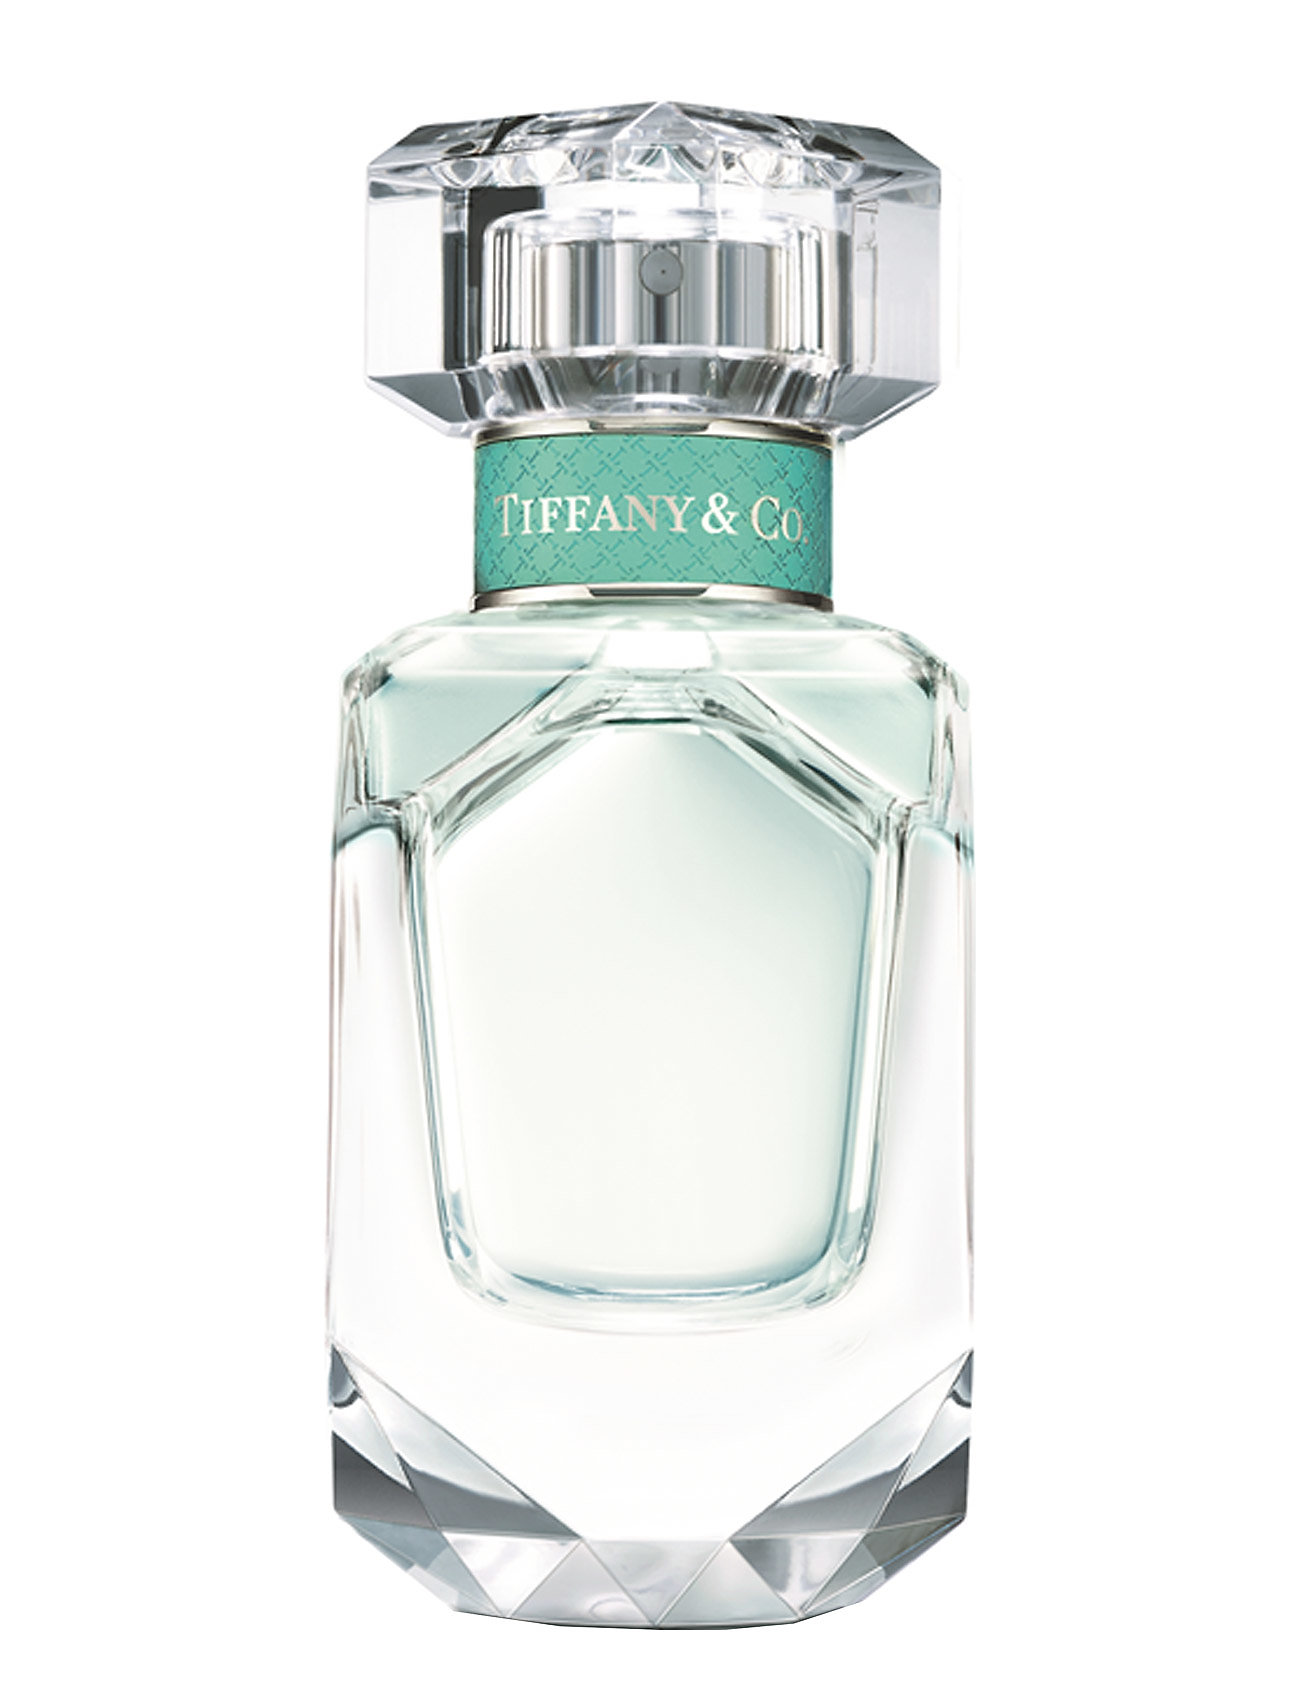 Tiffany TIFFANY & CO EAU DE PARFUM - NO COLOR